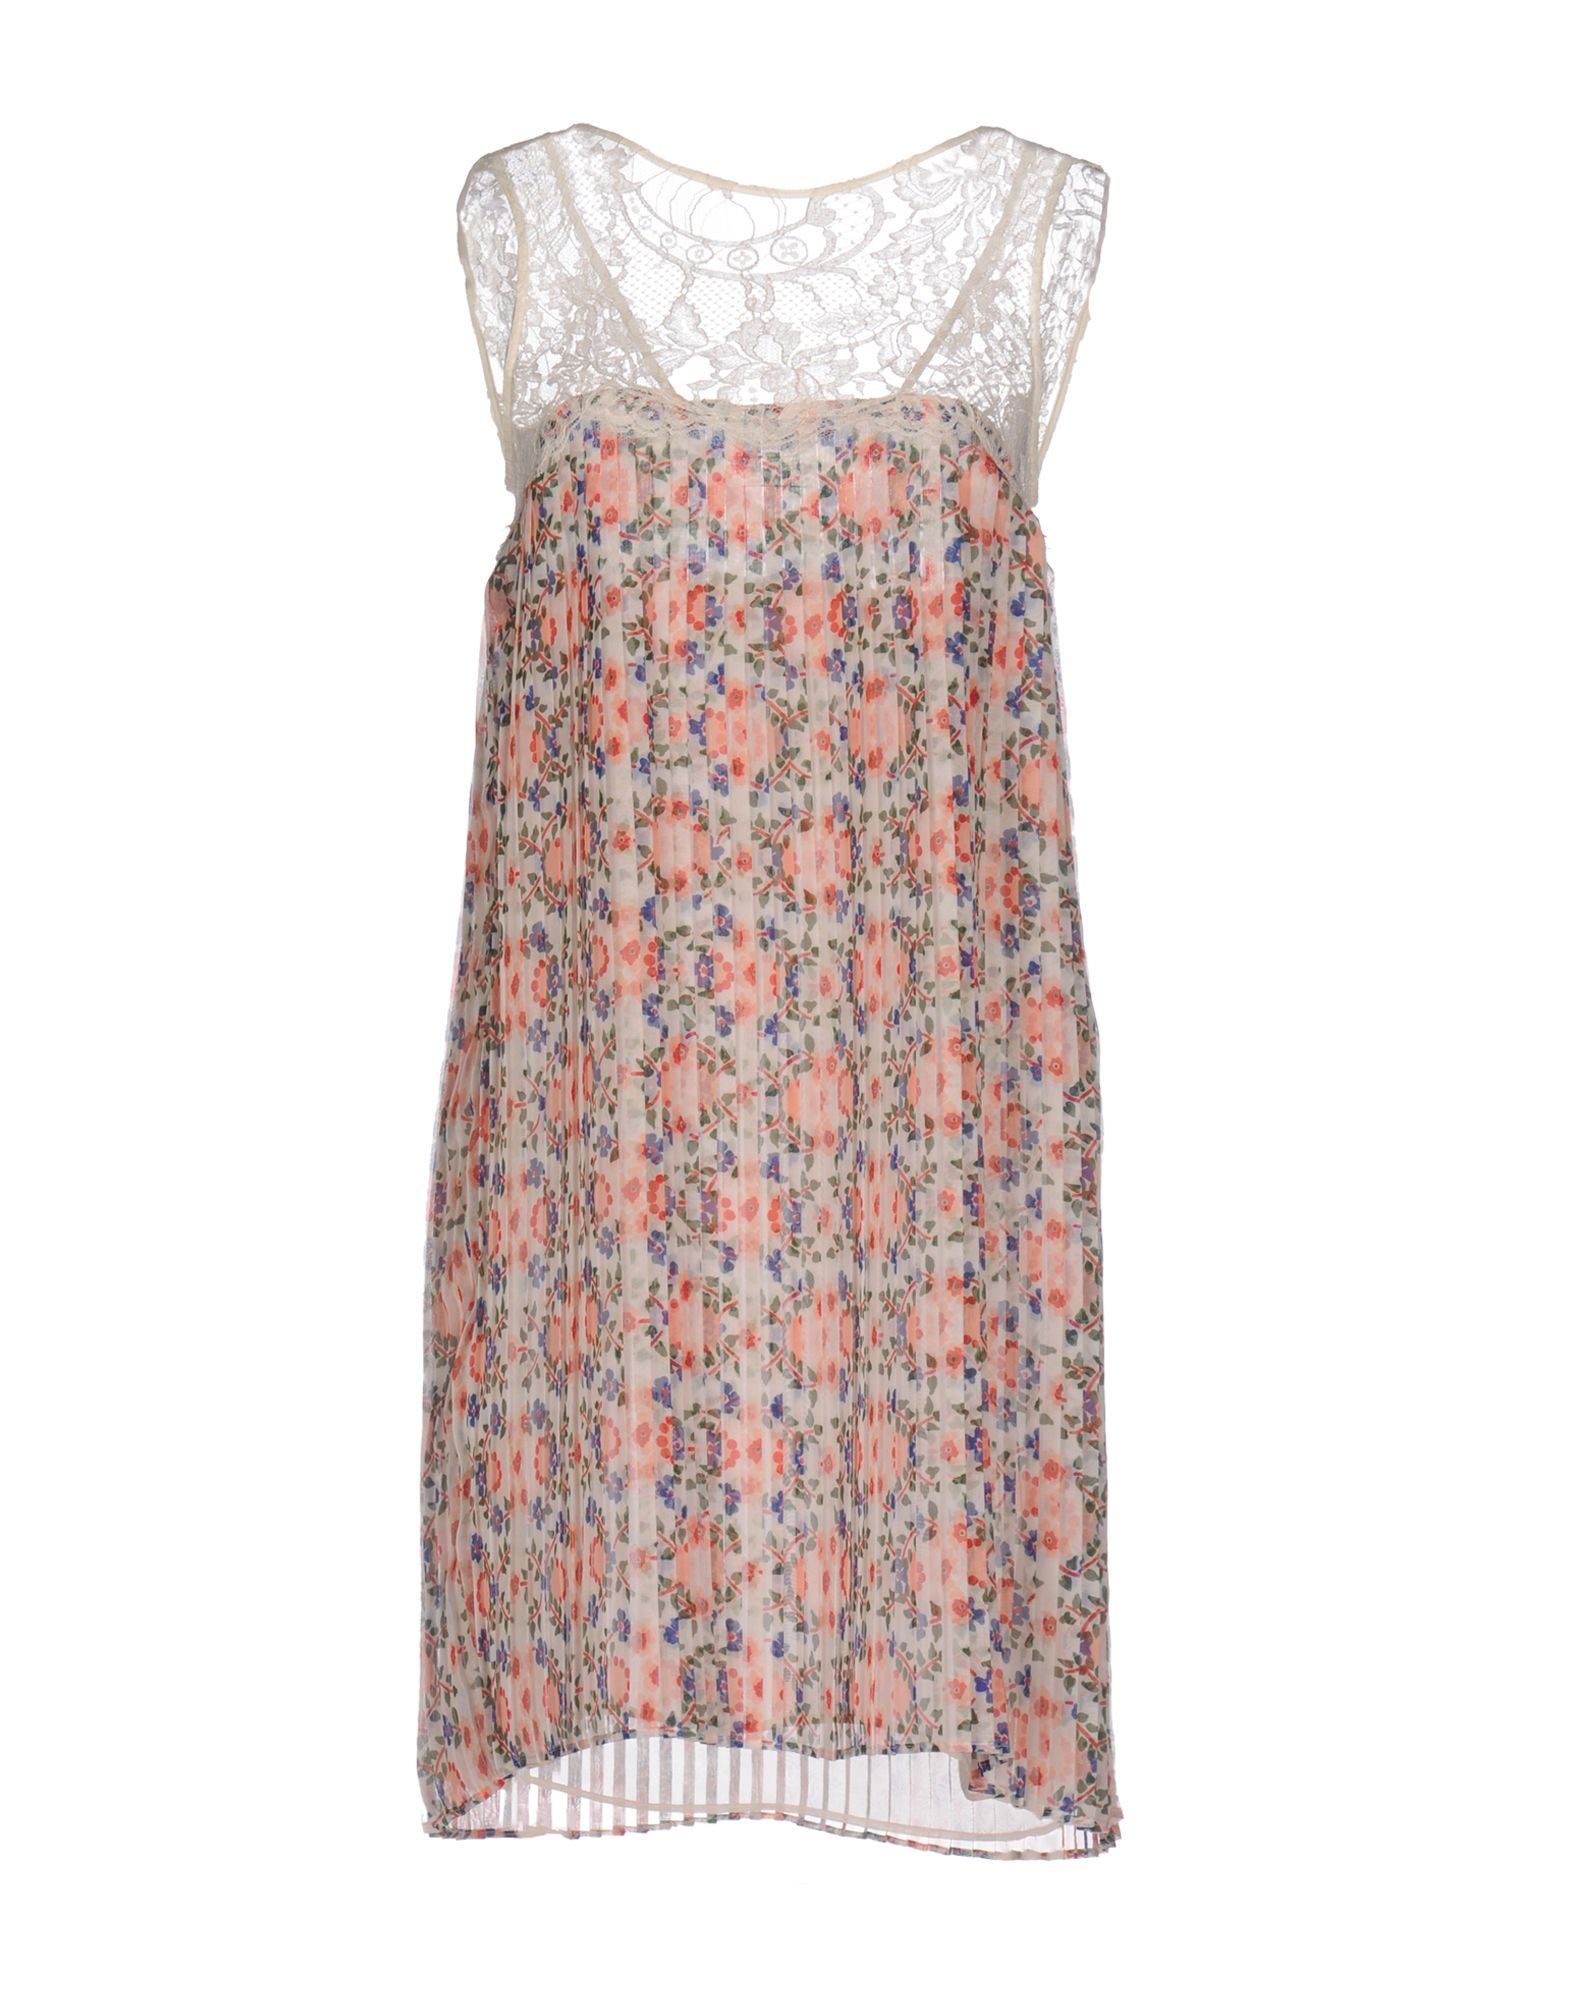 P.A.R.O.S.H. Ivory Floral Design And Lace Sleeveless Dress